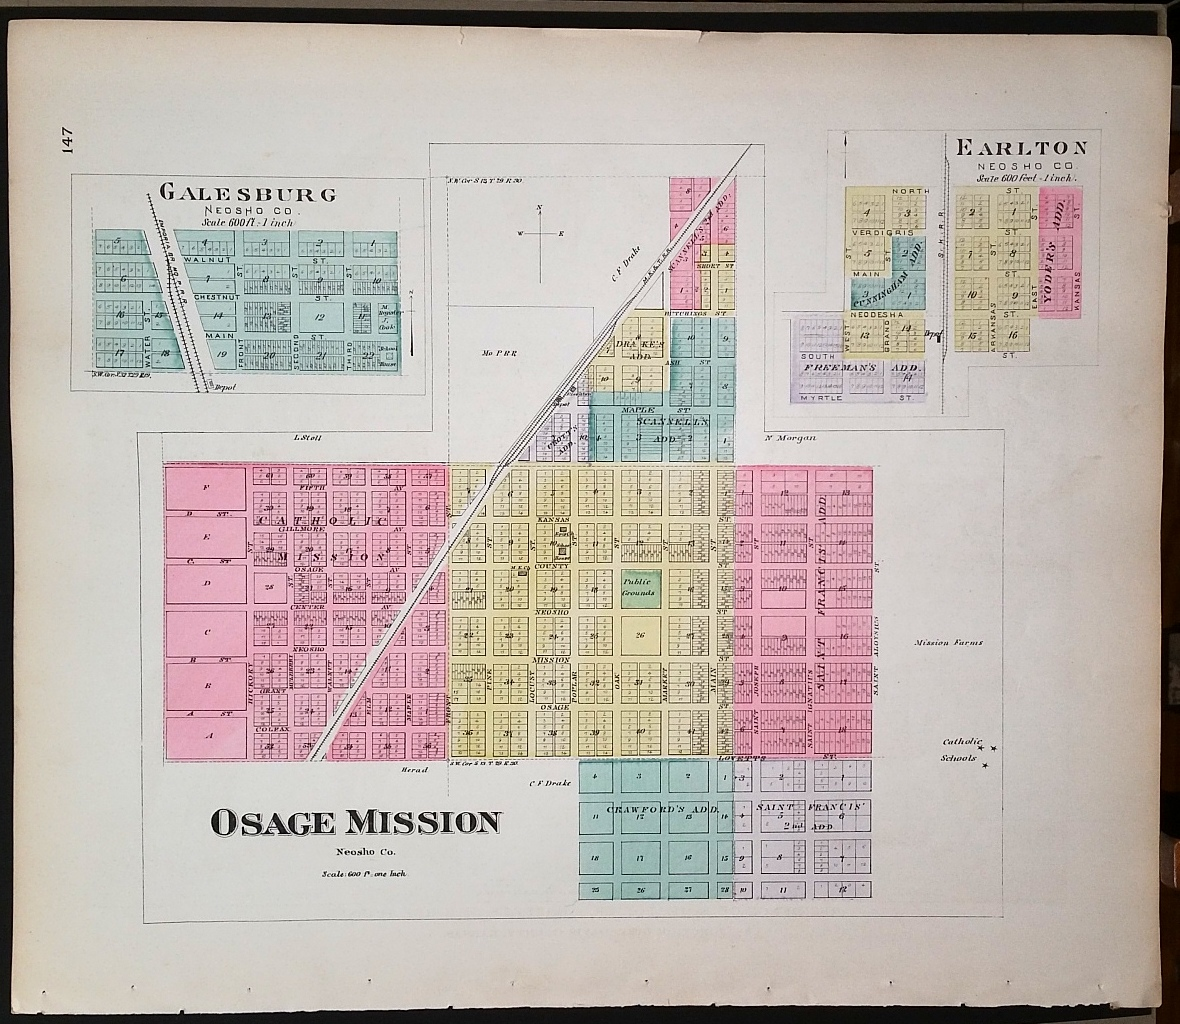 Image for [Map] Osage Mission, Galesburg, & Earlton (of Neosho County, Kansas) [backed with ] Erie Thayer, & Urbana (of Neosho Co.)